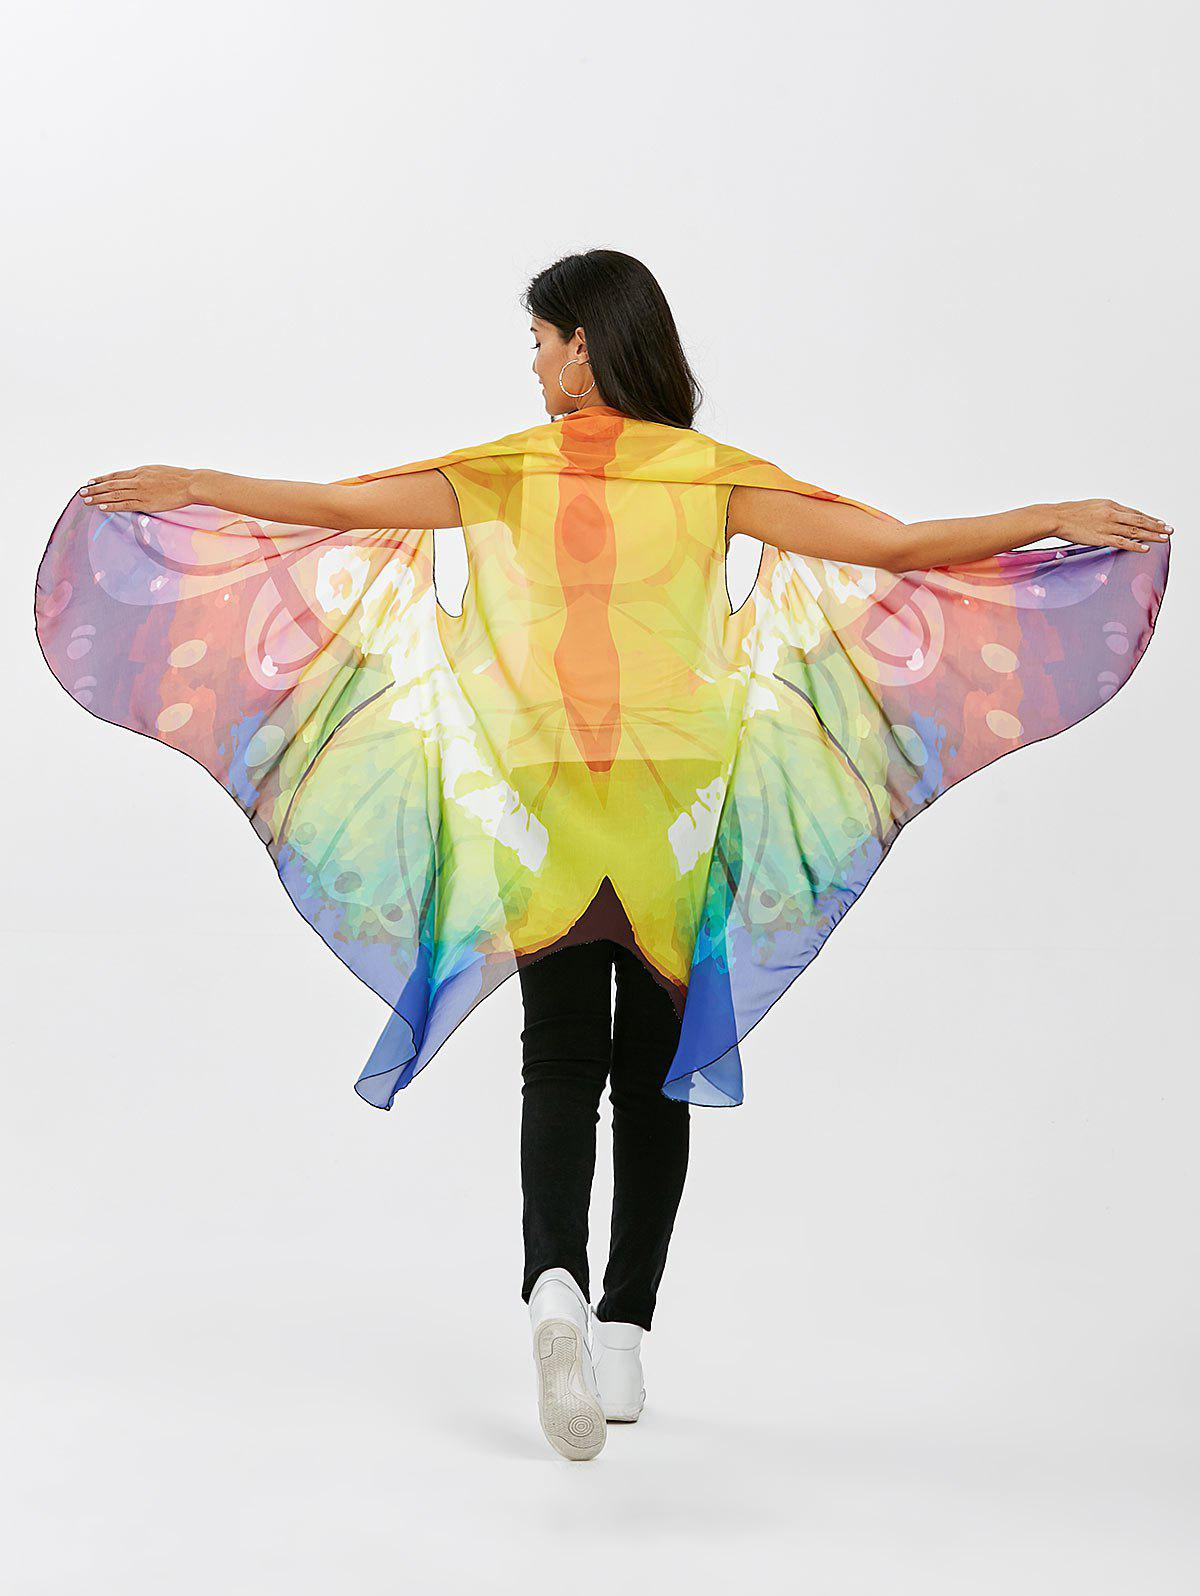 Sleeveless Butterfly Wing Cape Voile Pashmina lion pattern voile pashmina